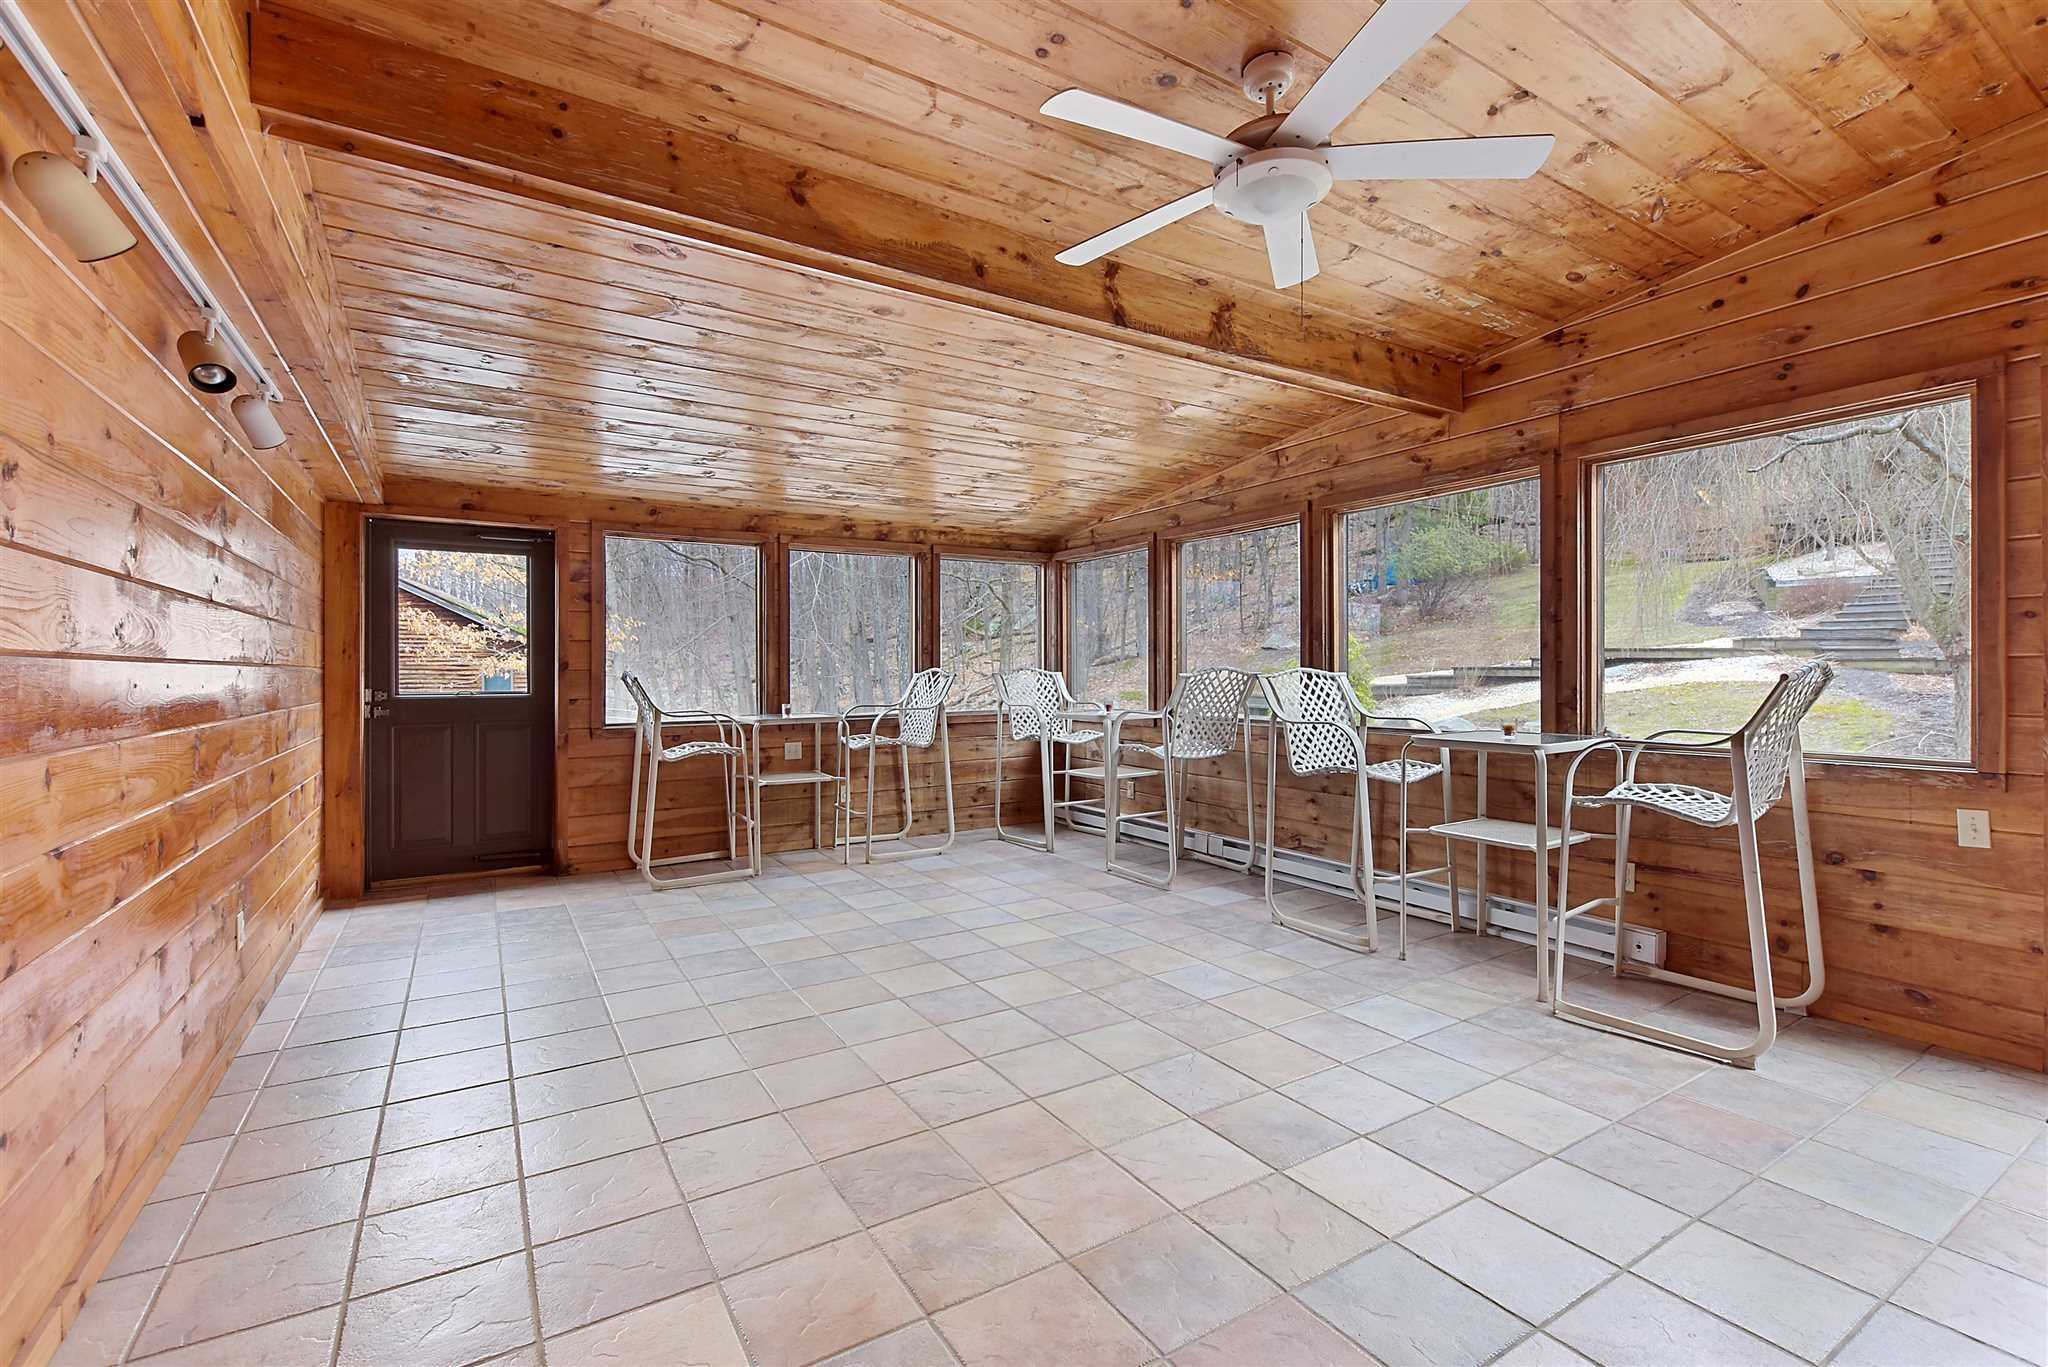 Additional photo for property listing at 263 HOLMES Road 263 HOLMES Road Pawling, New York 12531 United States